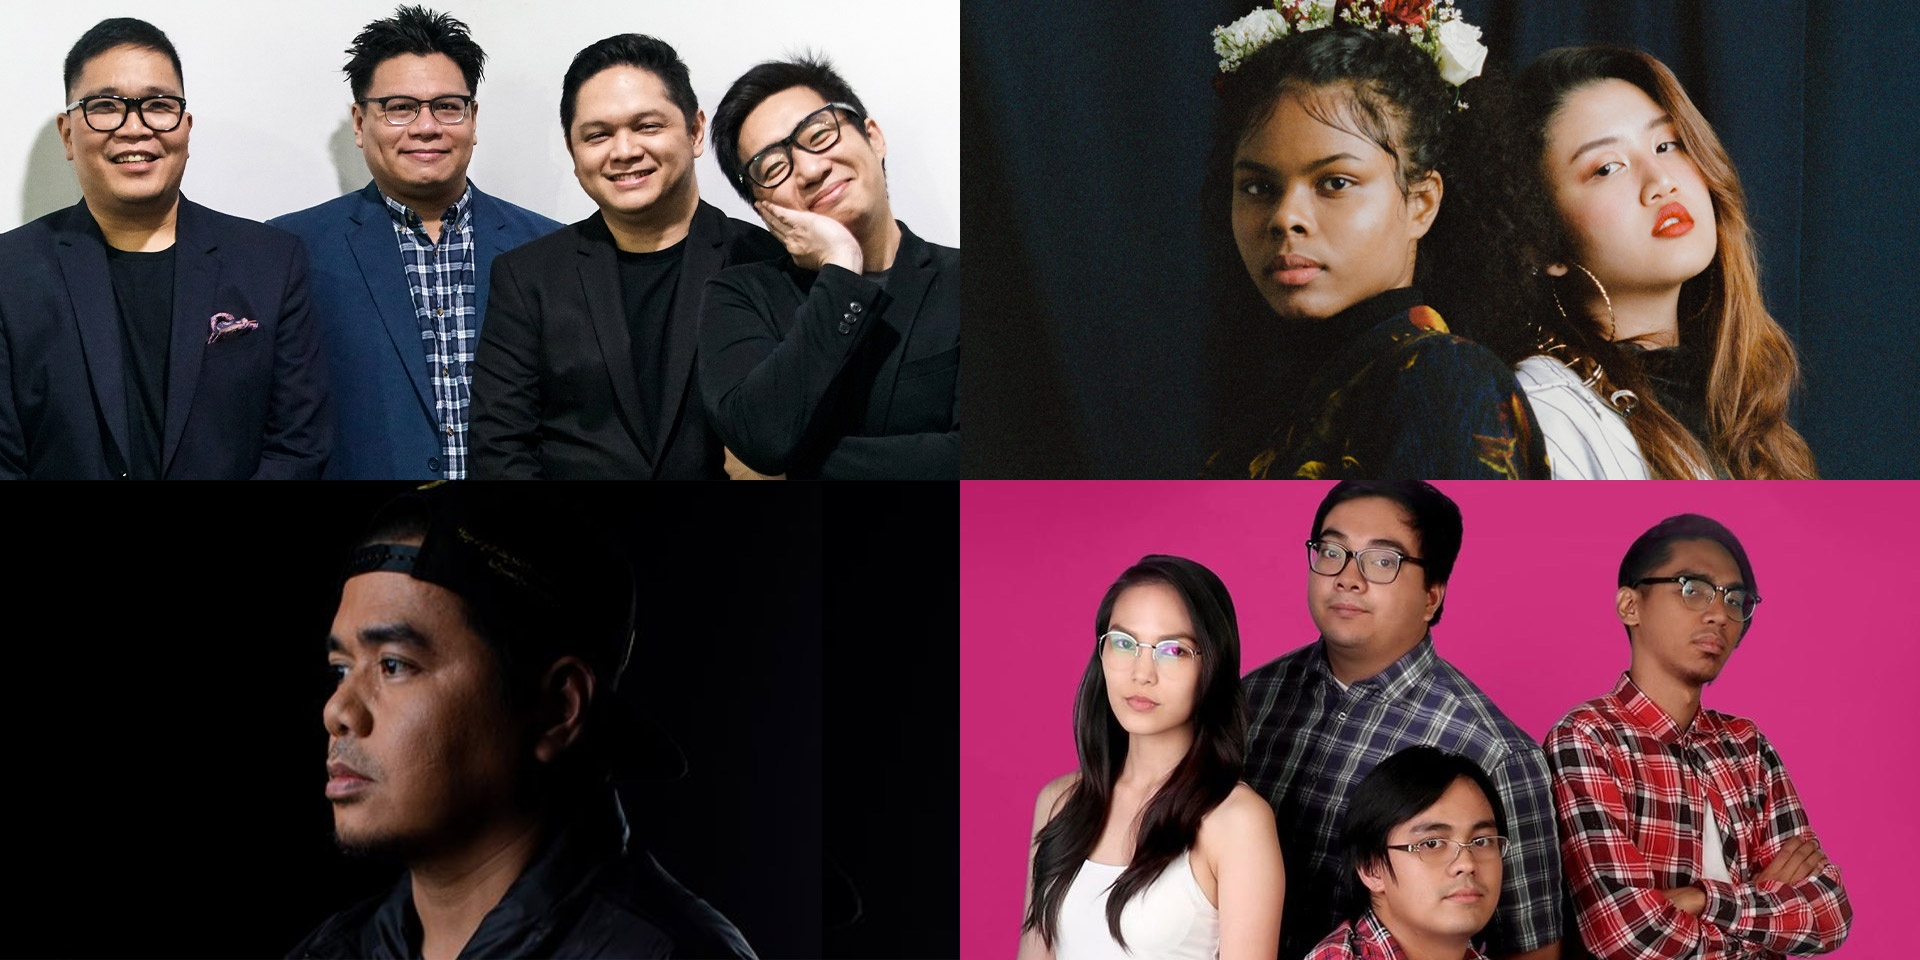 The Itchyworms, Gloc-9, allen&elle, Garage Morning, and more release new music – listen